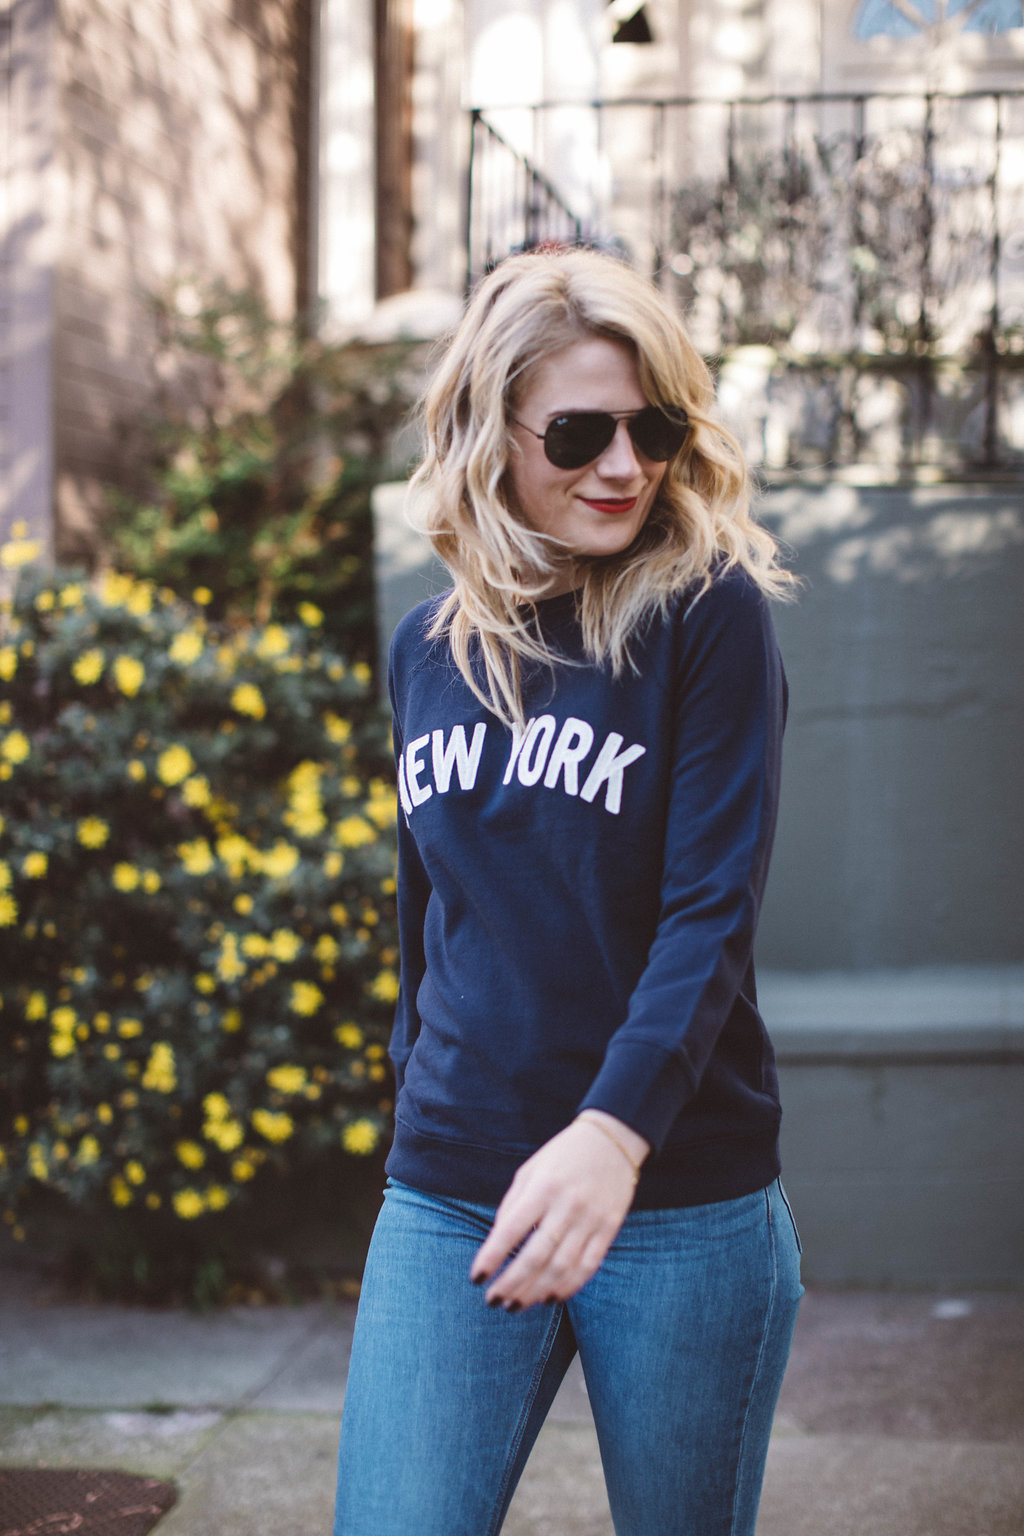 East Coast, Always. // J. Crew New York Sweatshirt paired with Everlane Denim and Chuck Taylor sneakers for a casual weekend look.